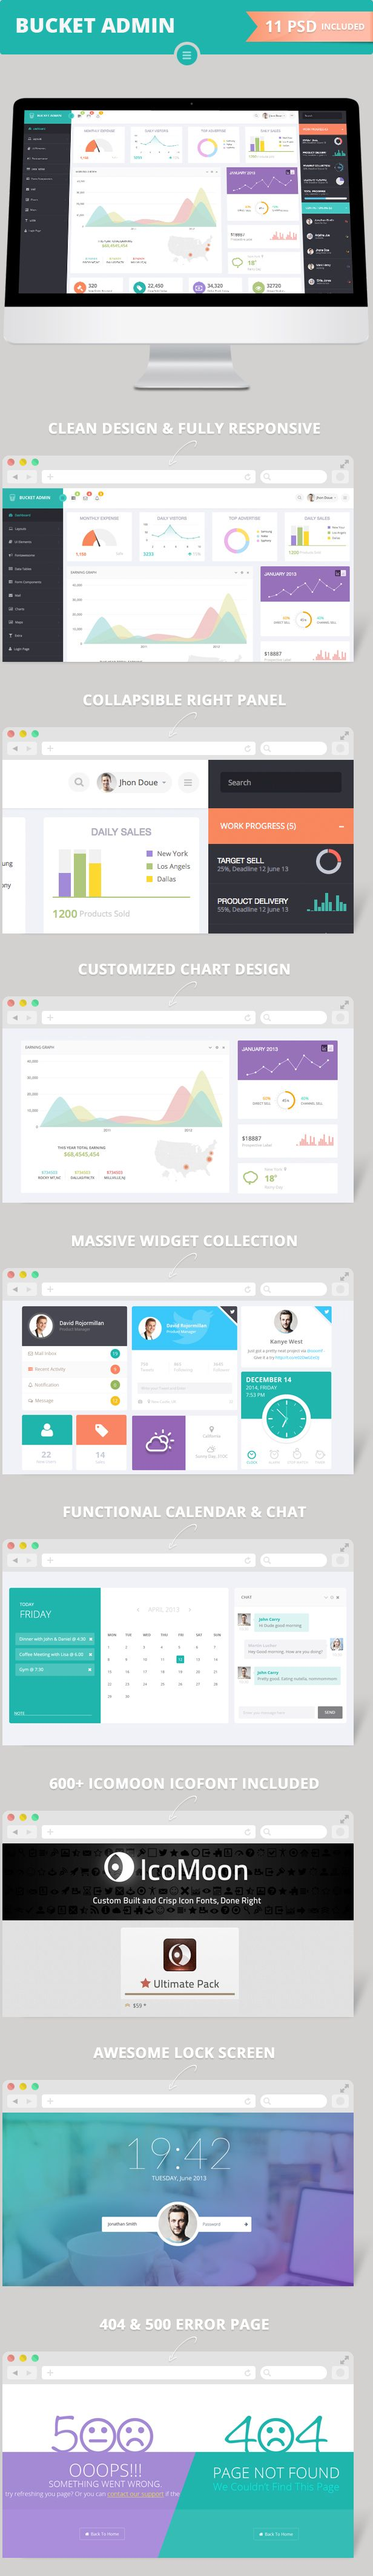 87 best html admin themes images on pinterest dashboard design